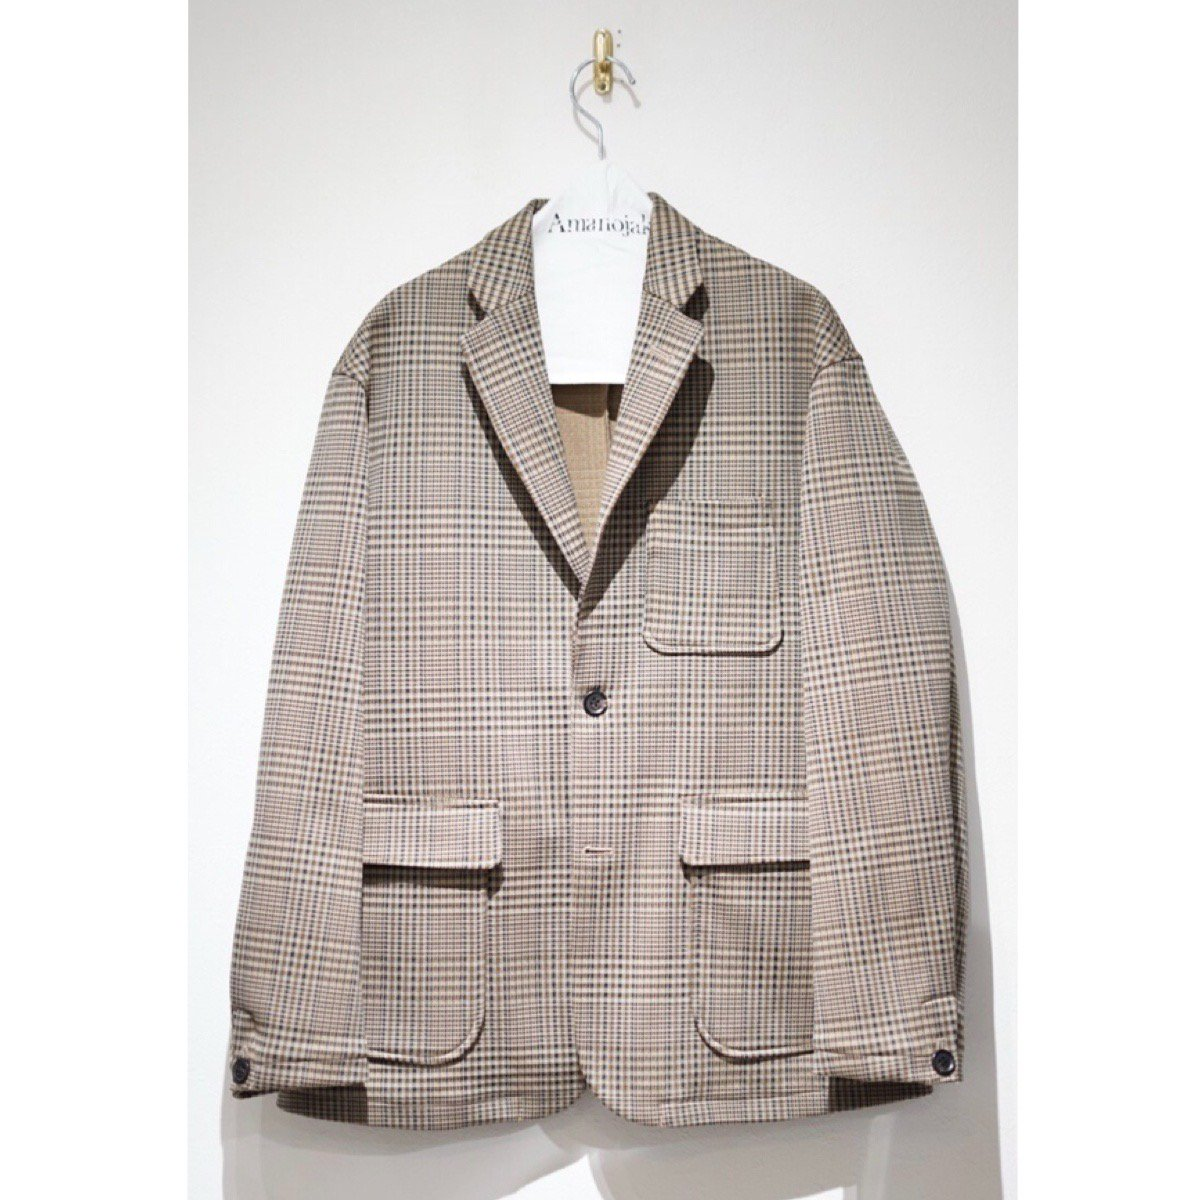 CURLY-BLEEKER JACKET BEIGE CHECK